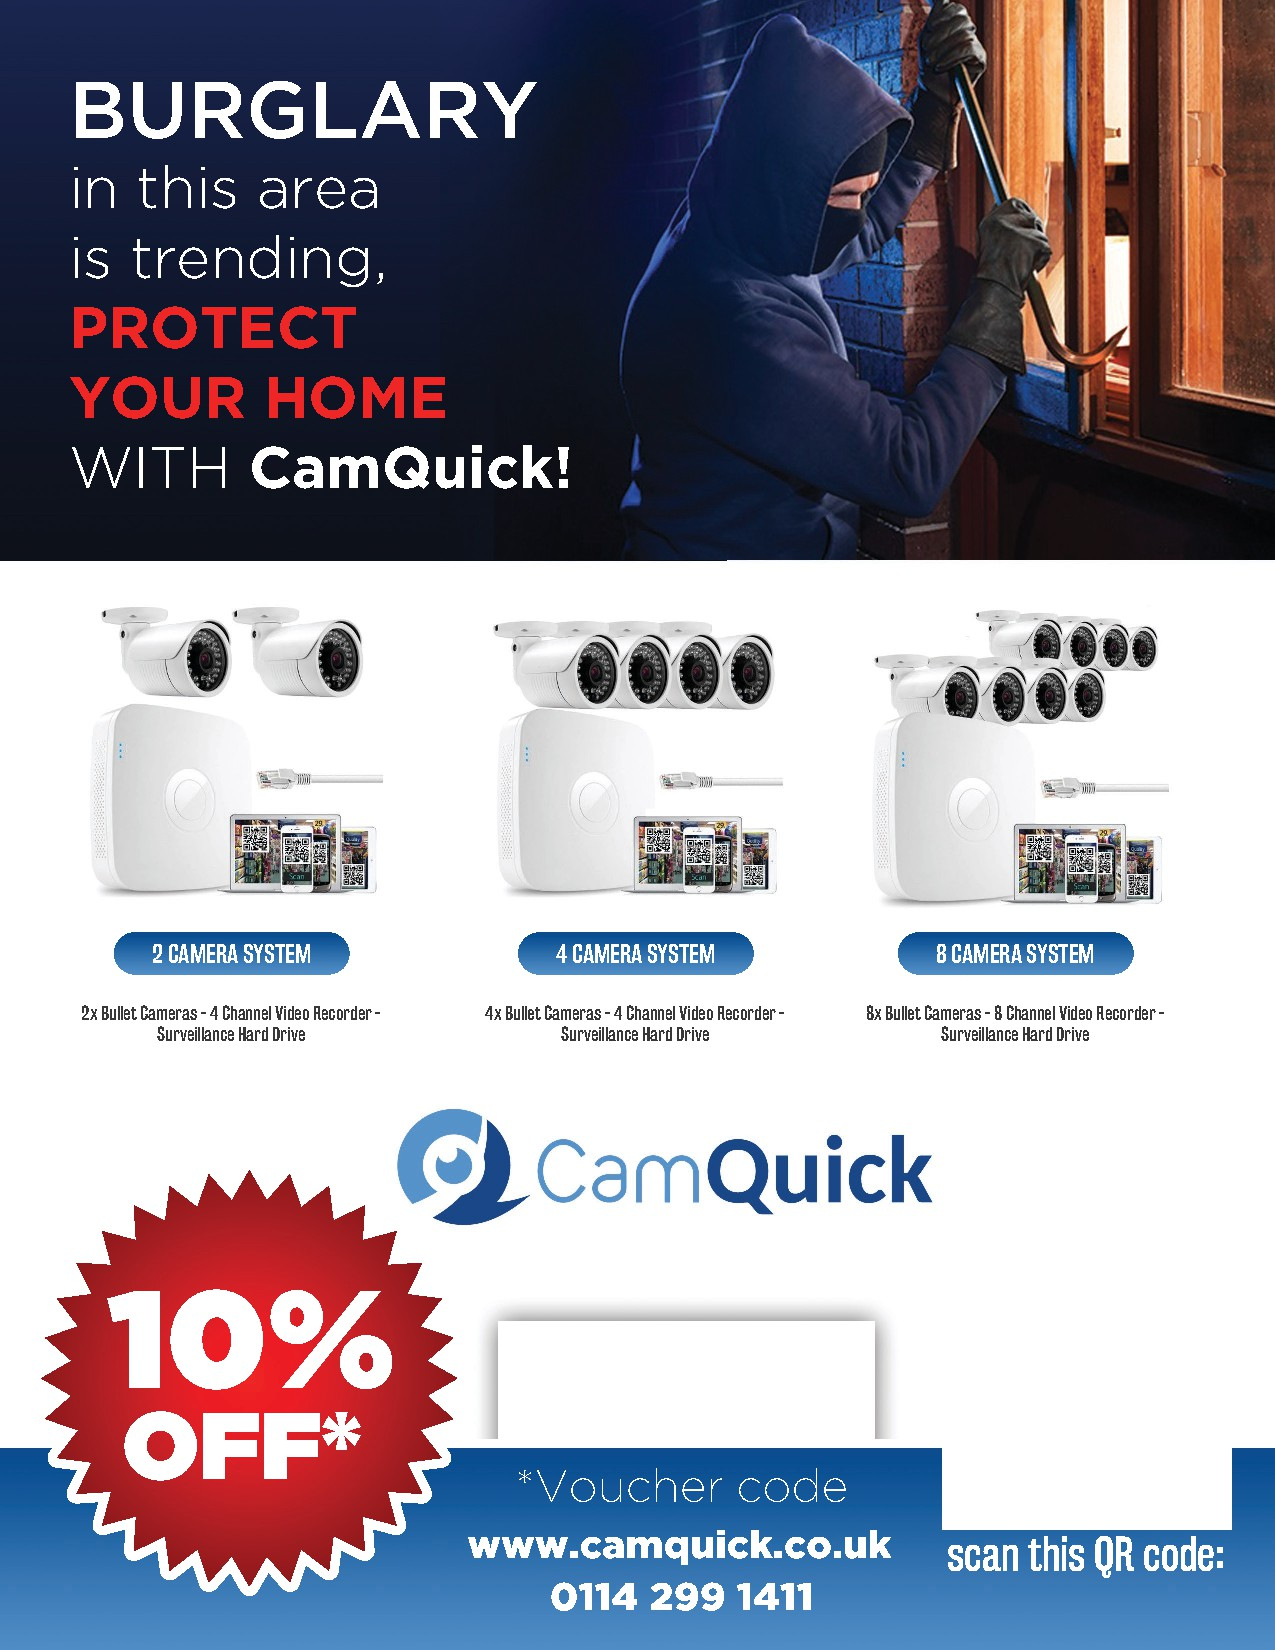 '10% Off' flyer design for a CCTV installation company.